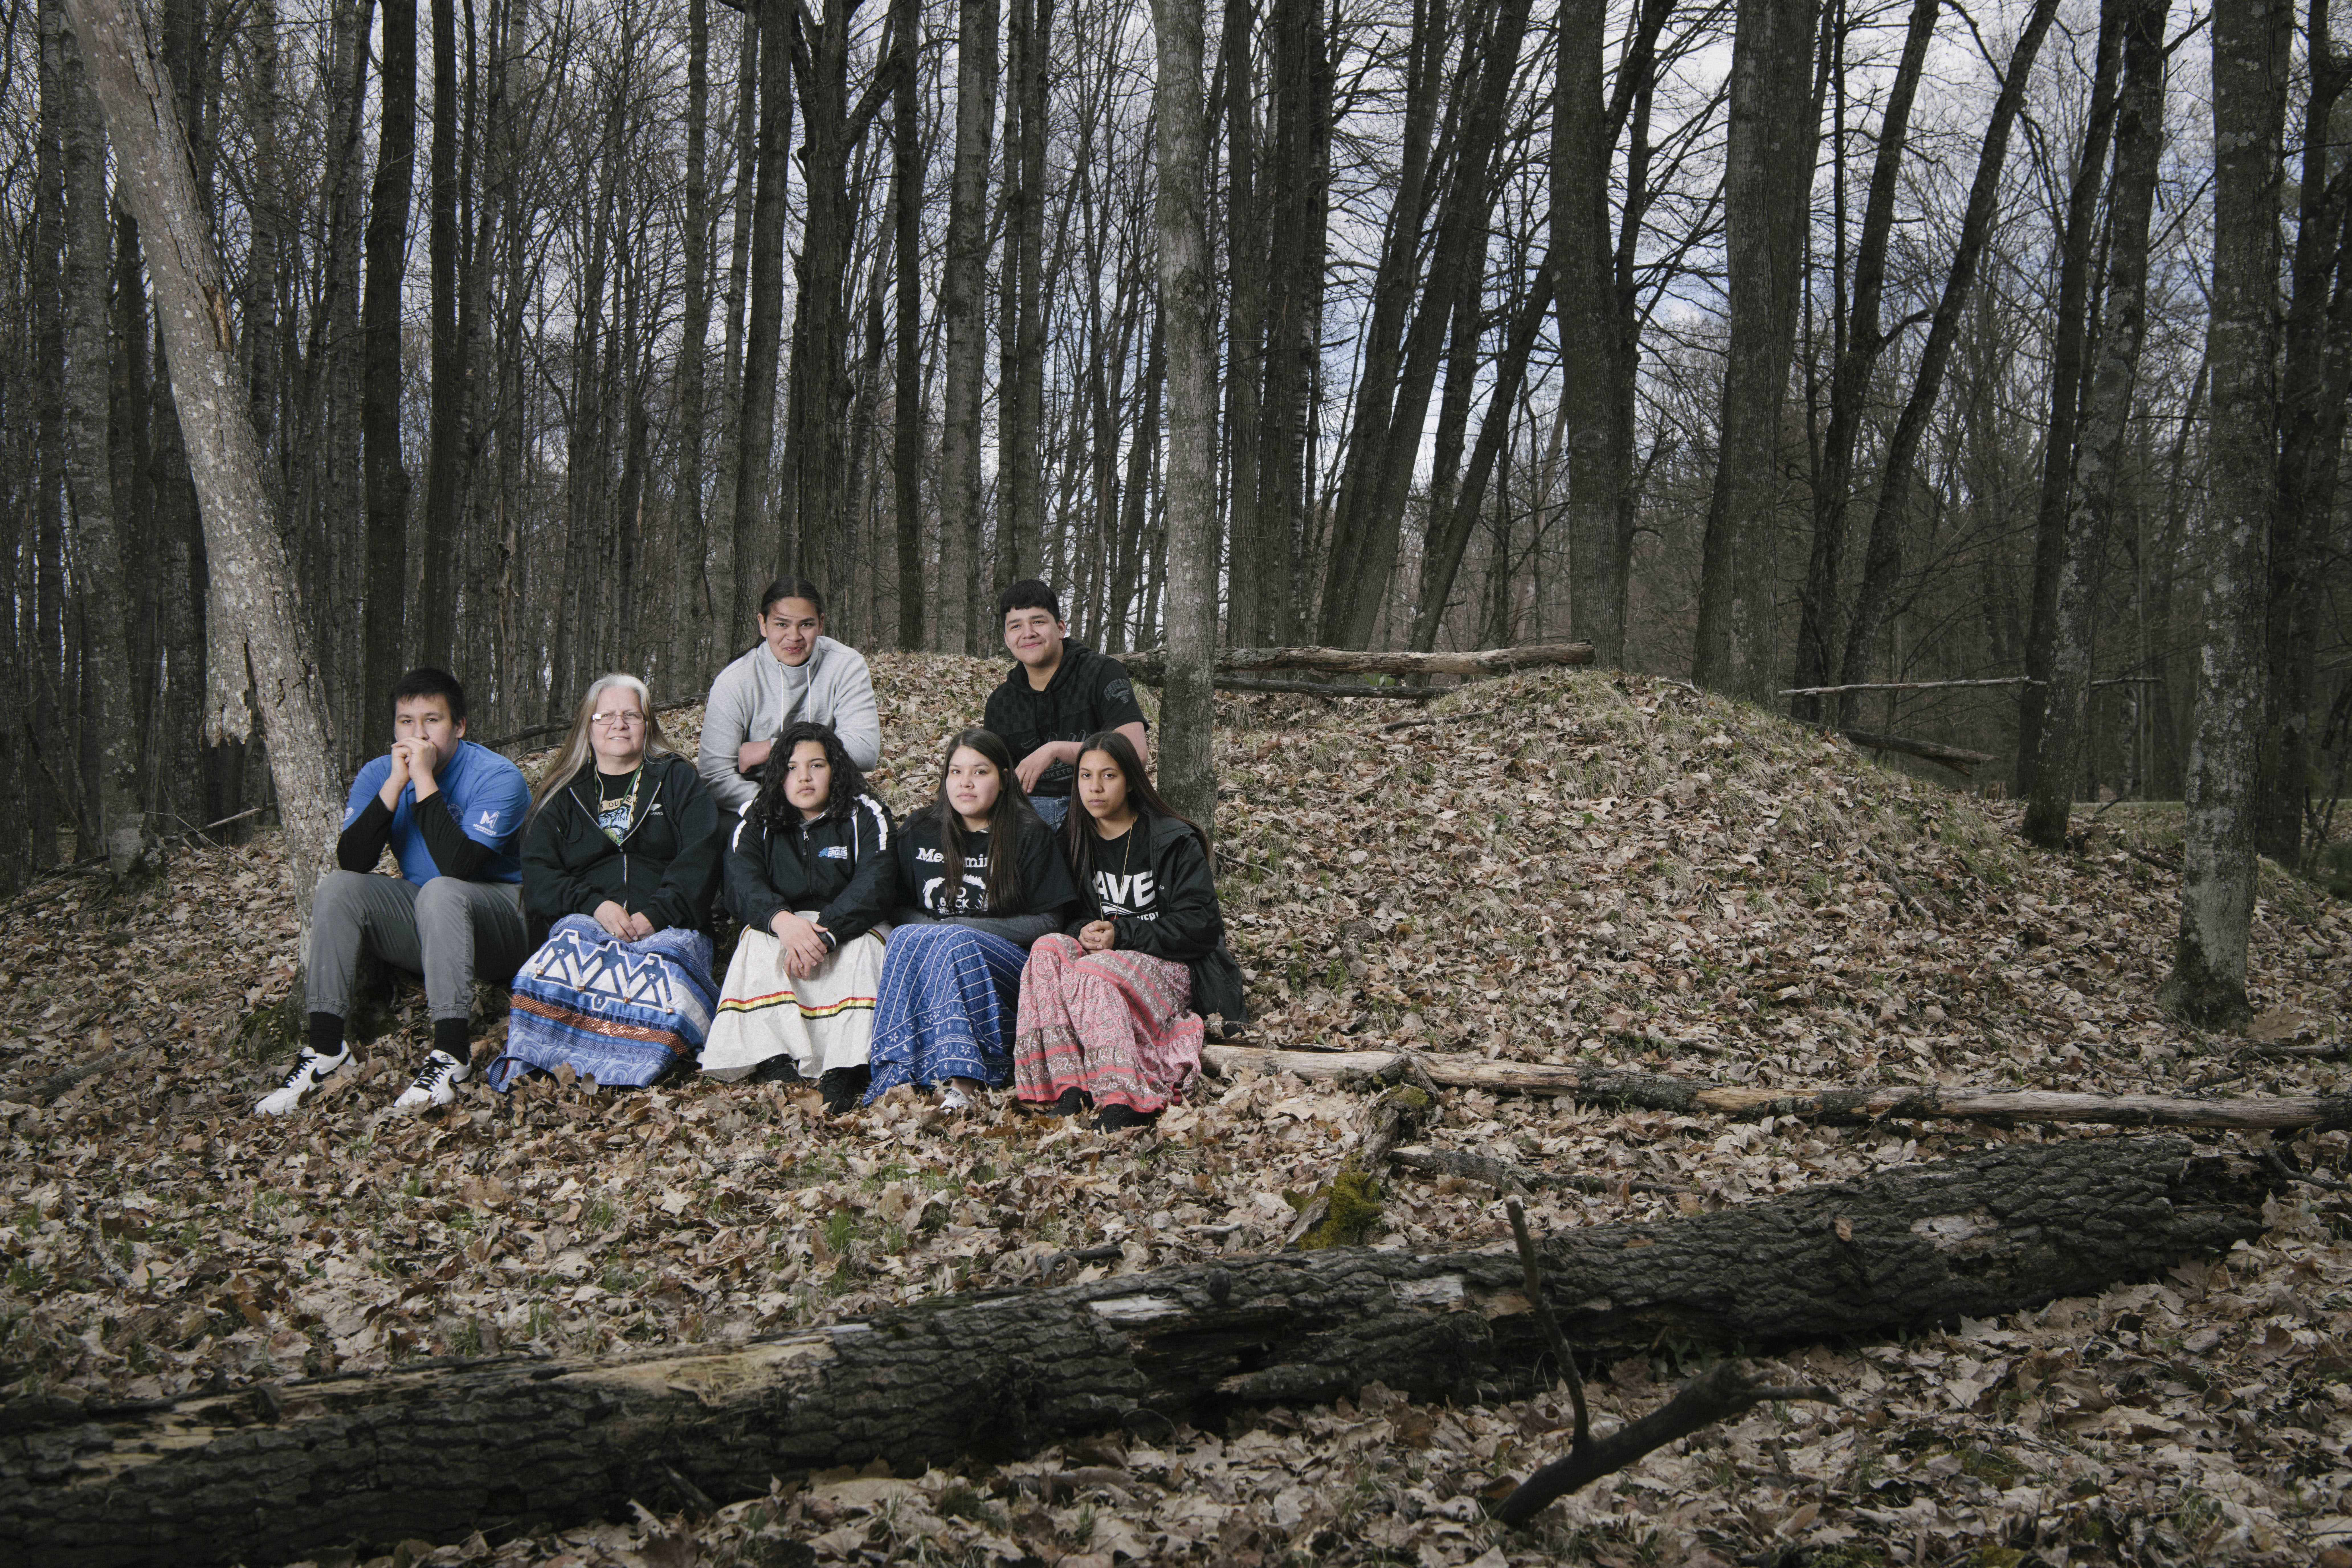 Teenagers at an ancient mound near the banks of the Menominee River.